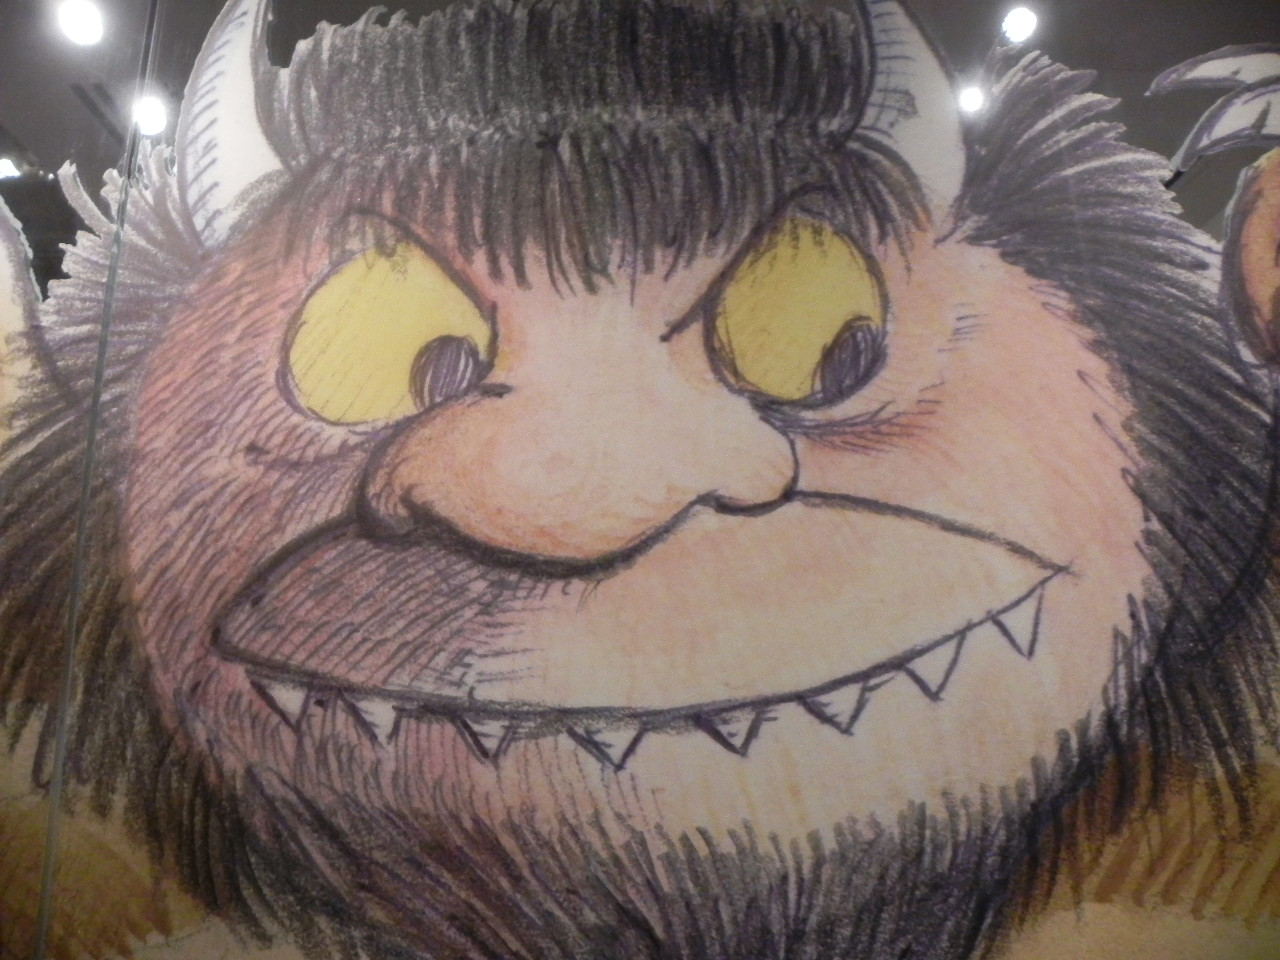 A close-up of a Wild Thing at the Maurice Sendak Exhibit.